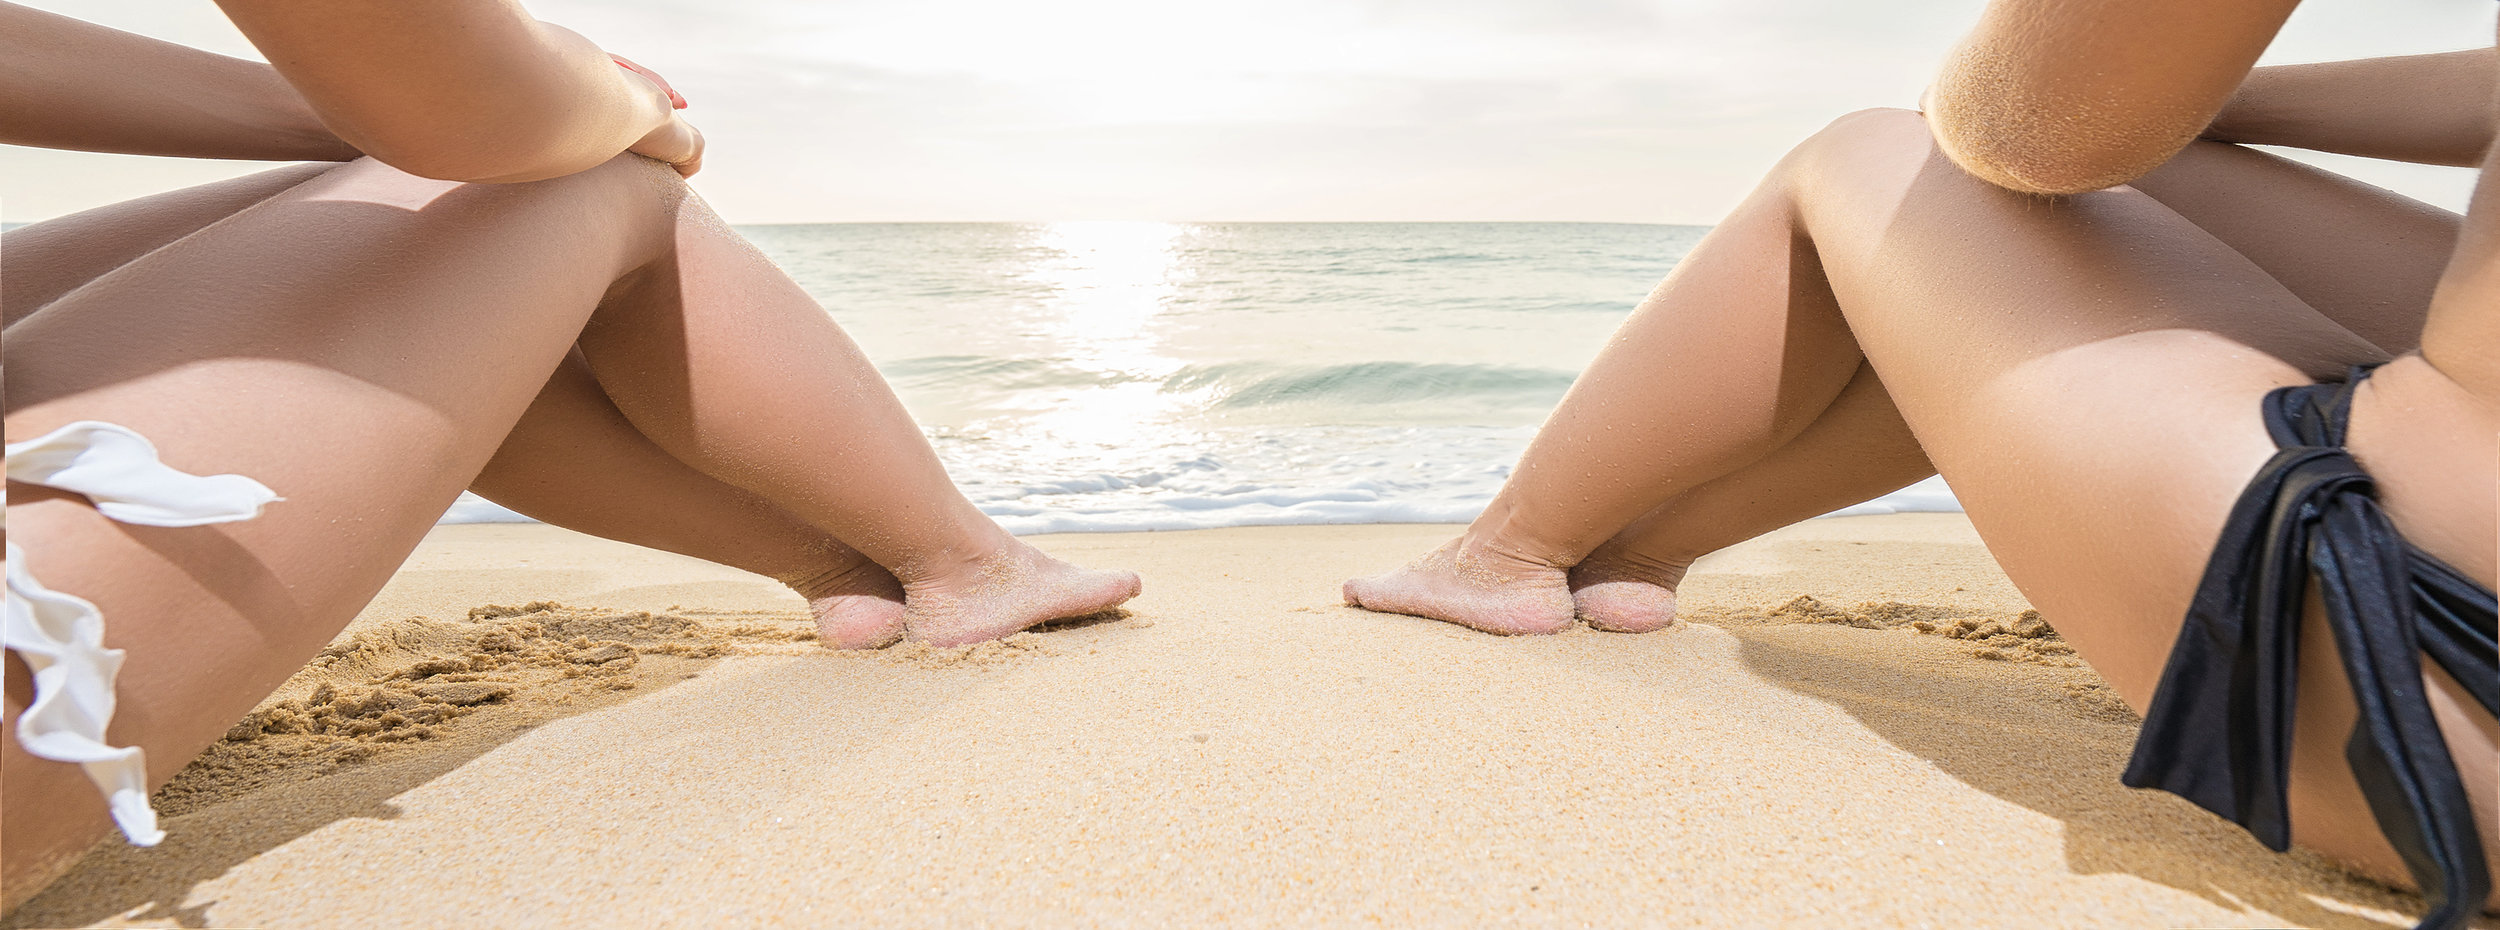 HEALTHY LEGS ARE BEAUTIFUL LEGS, DR. VAUGHAN'S AWARD WINNING SCLEROTHERAPY TREATMENTS IN WESTLAKE VILLAGE COULD CHANGE YOUR LIFE.